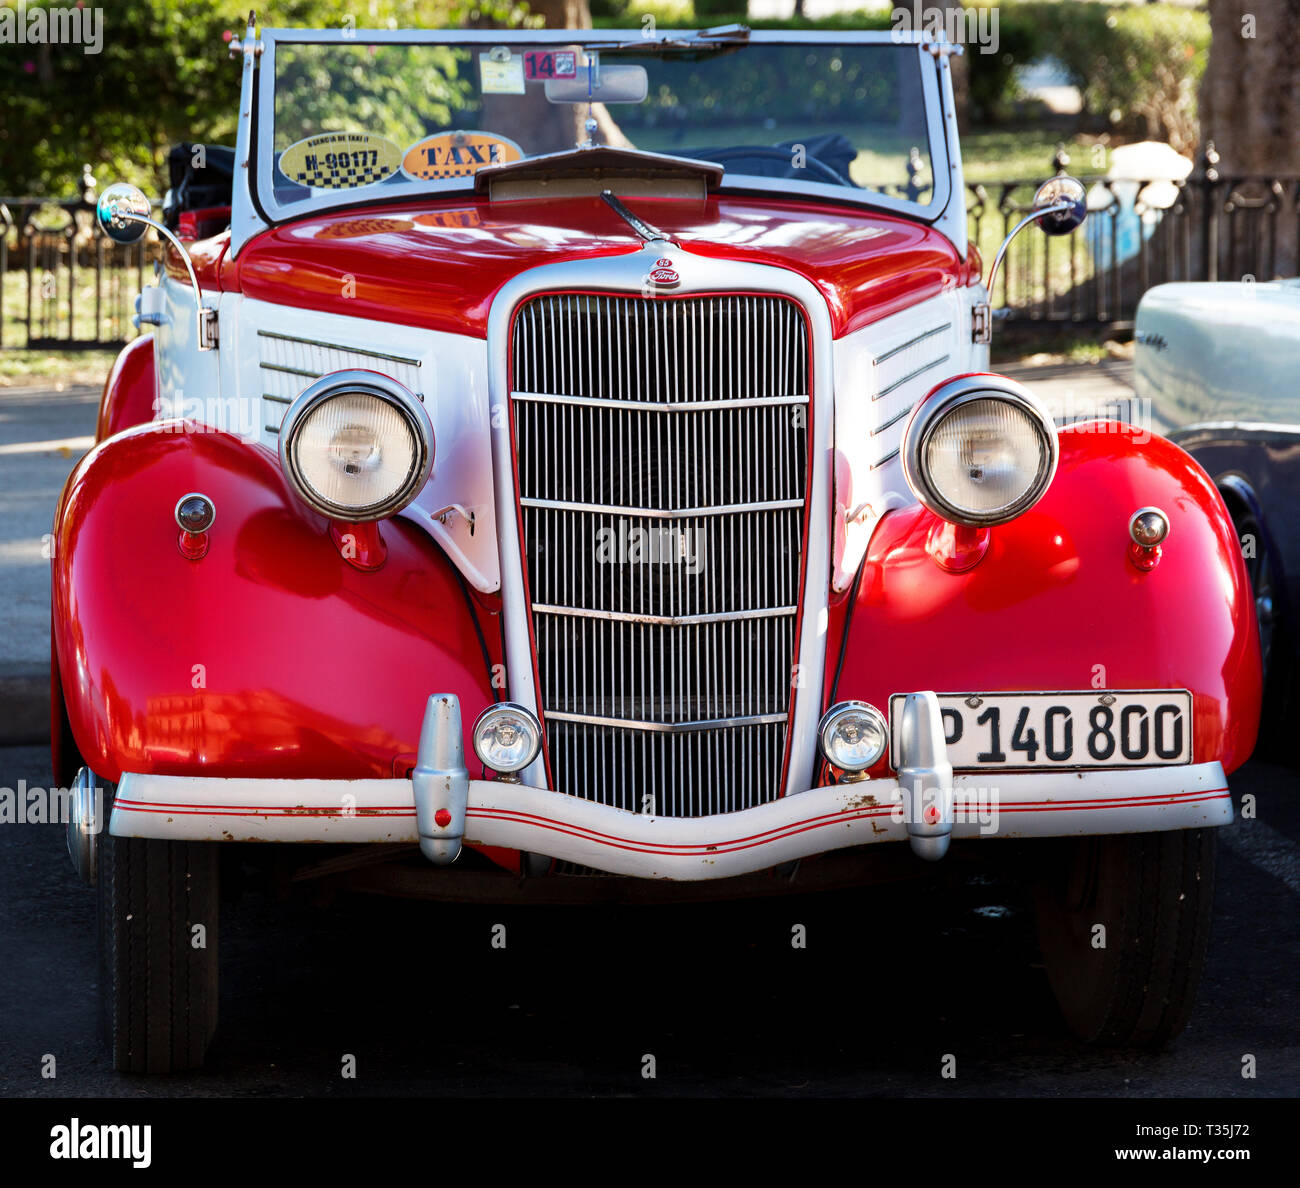 1935 Ford Convertible two tone red and white parked in Havana, Ford - Stock Image